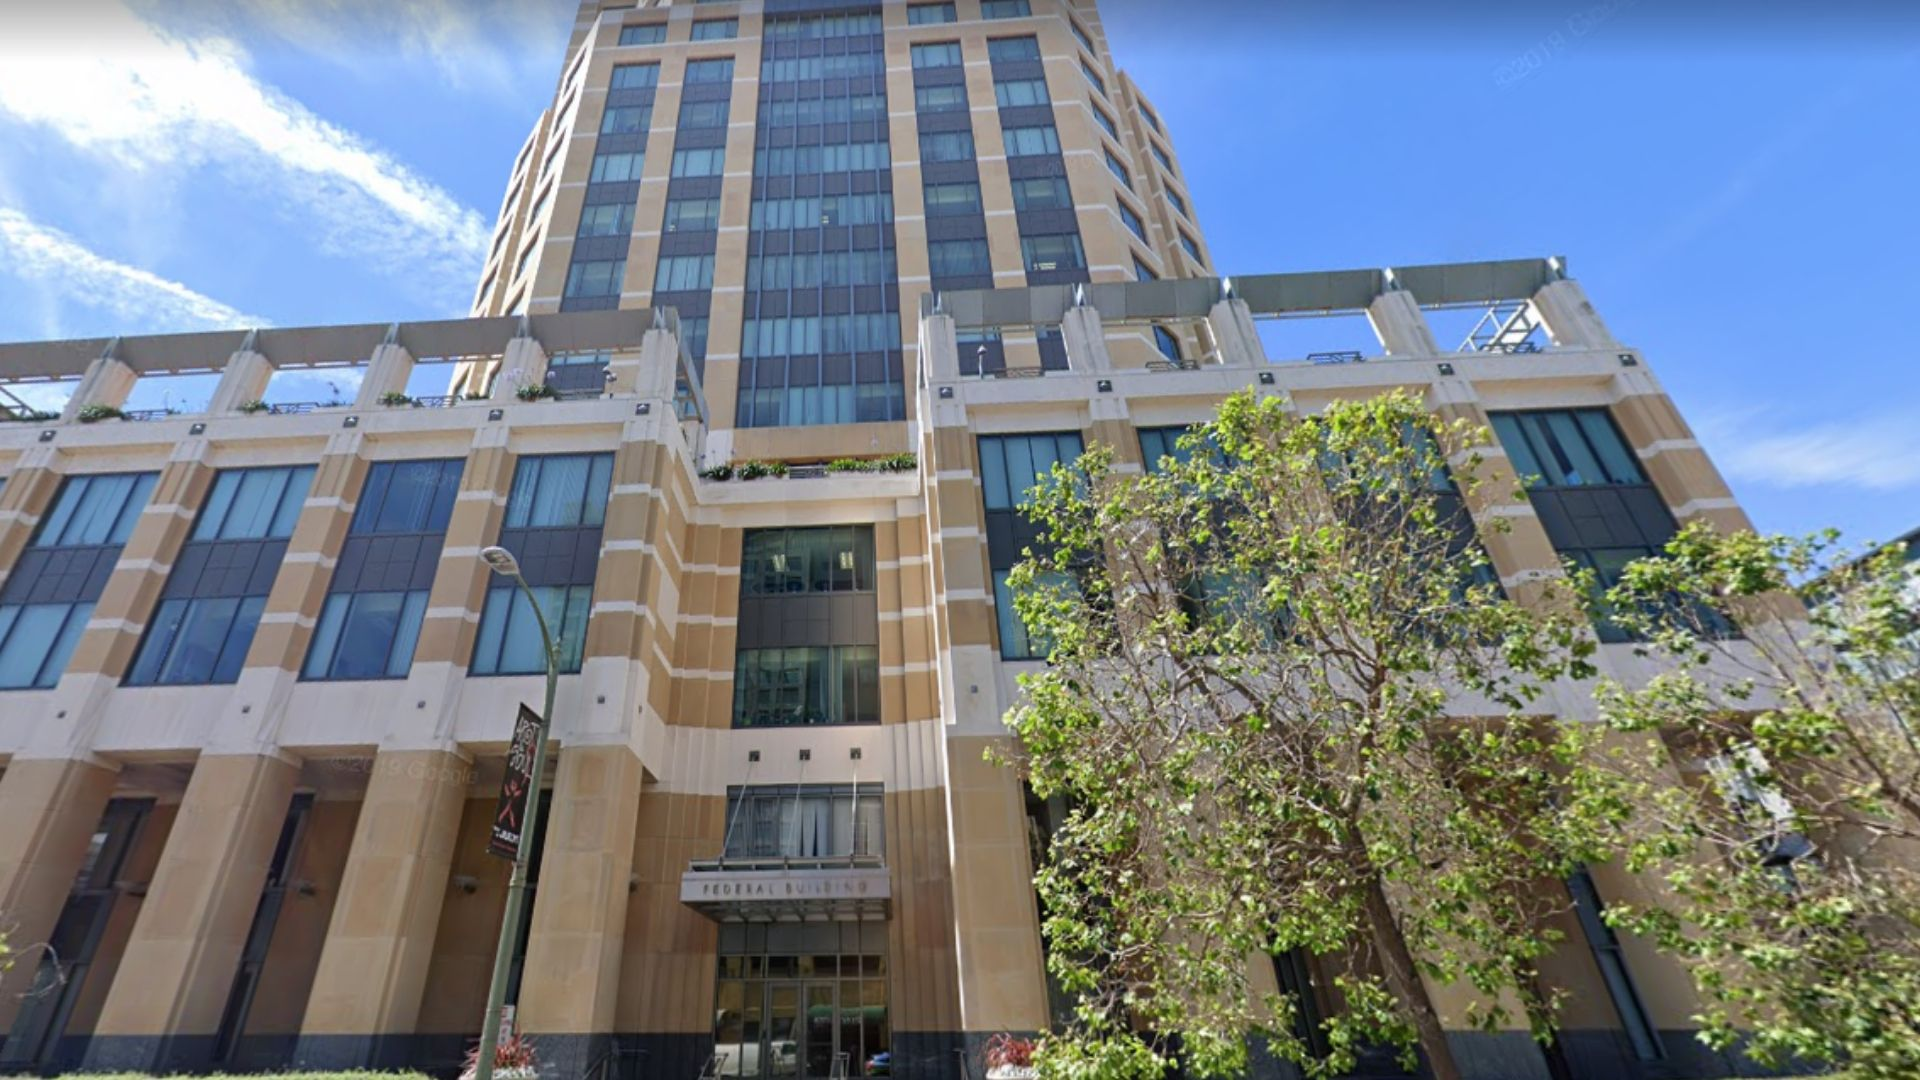 A Google Maps image shows the Ronald V. Dellums Federal Building in Oakland.